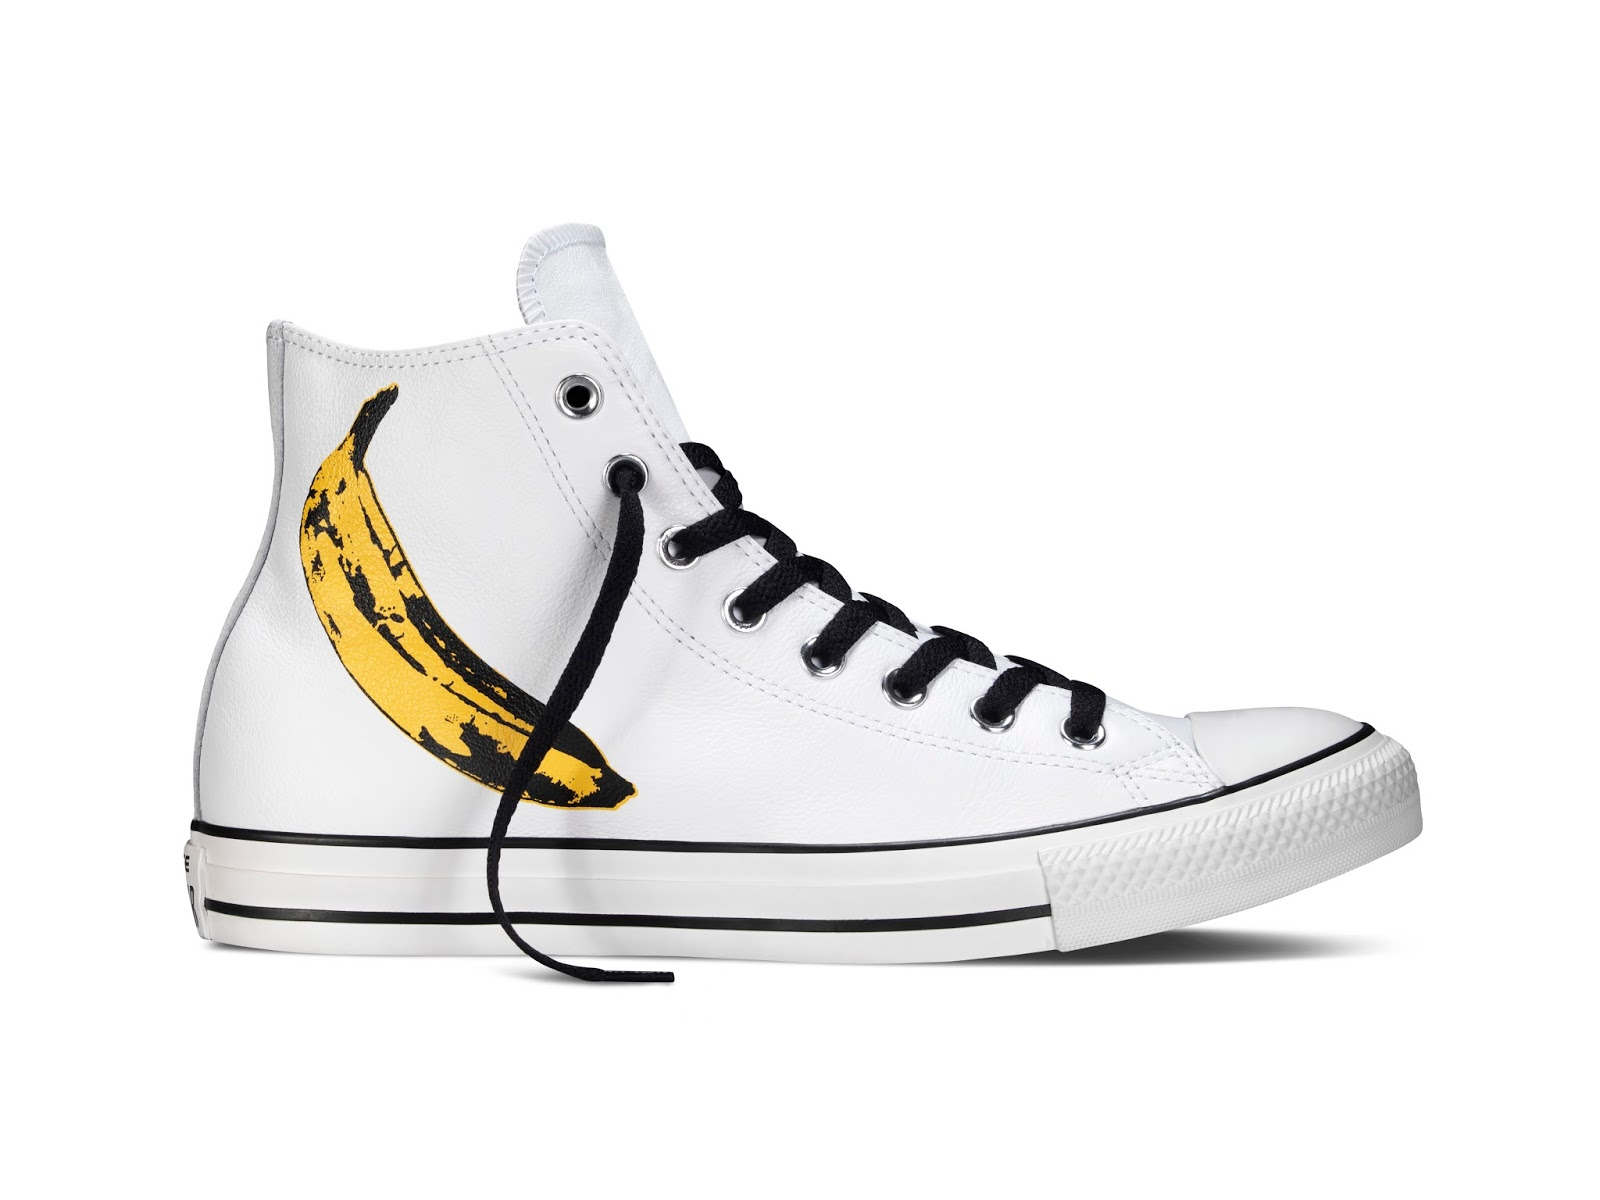 058368c3ab15 SugarSmile  Go Bananas this CNY with Converse and Andy Warhol